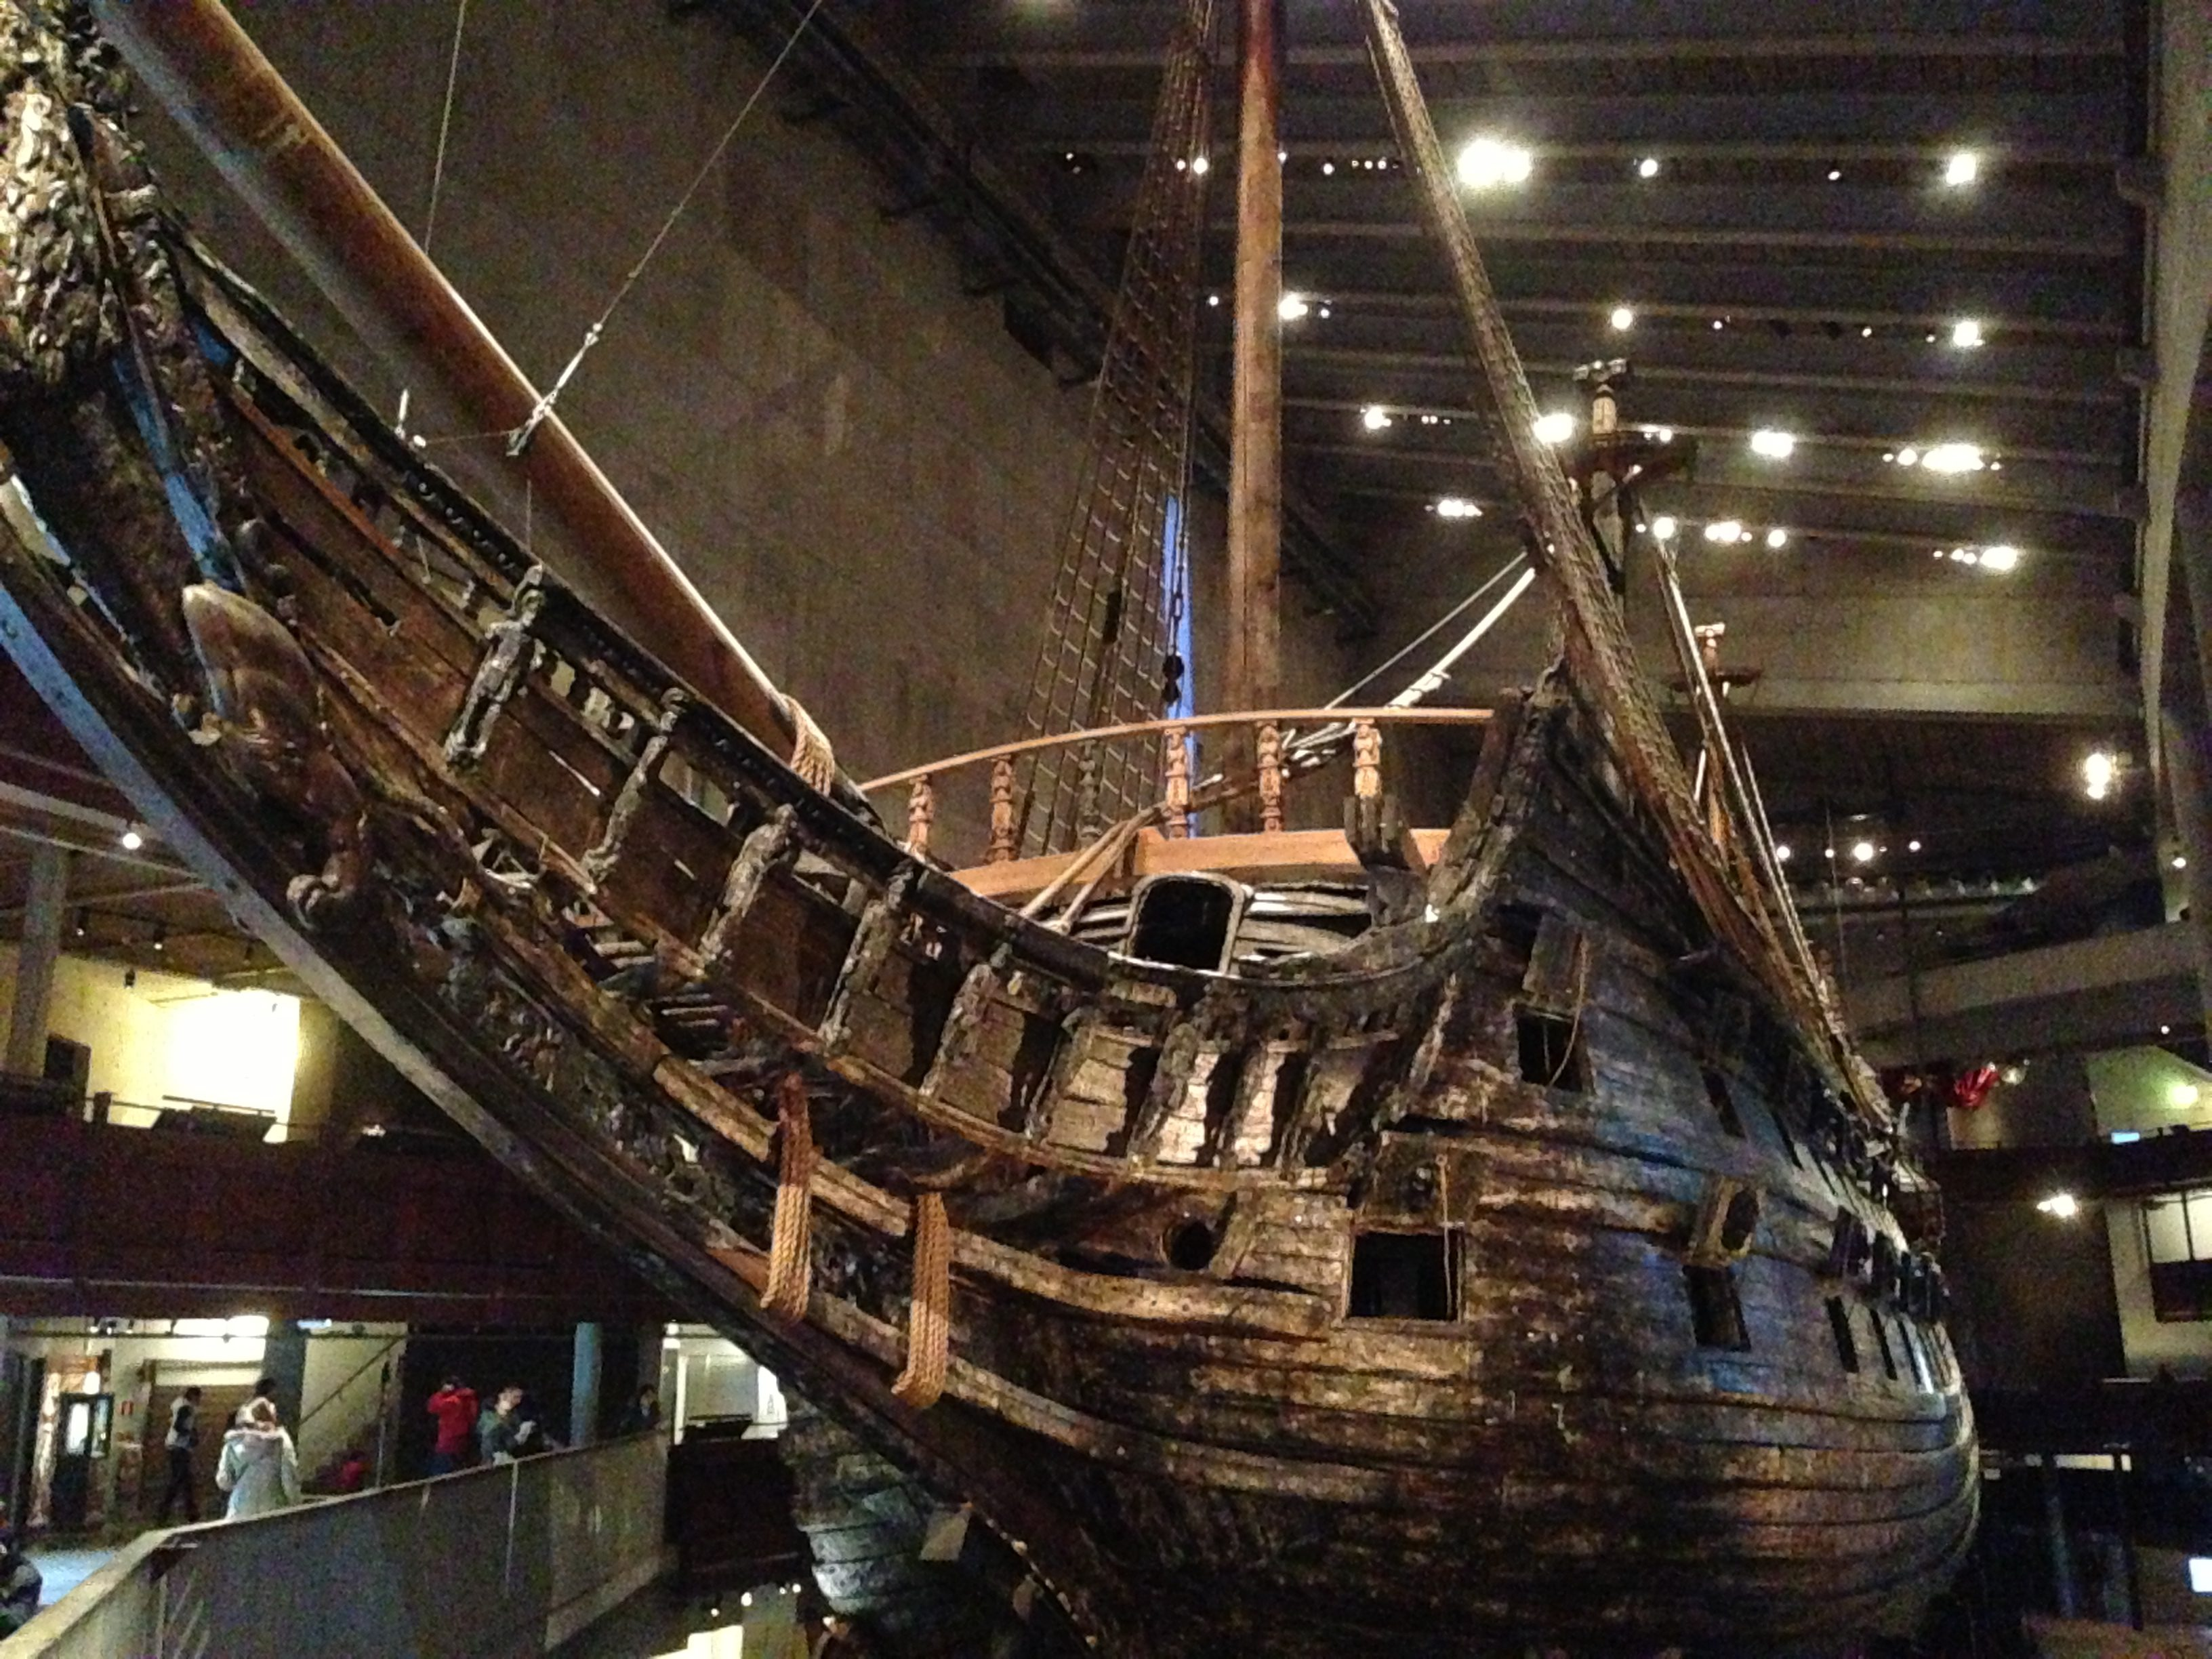 The iconic Vasa ship on display in its Stockholm museum